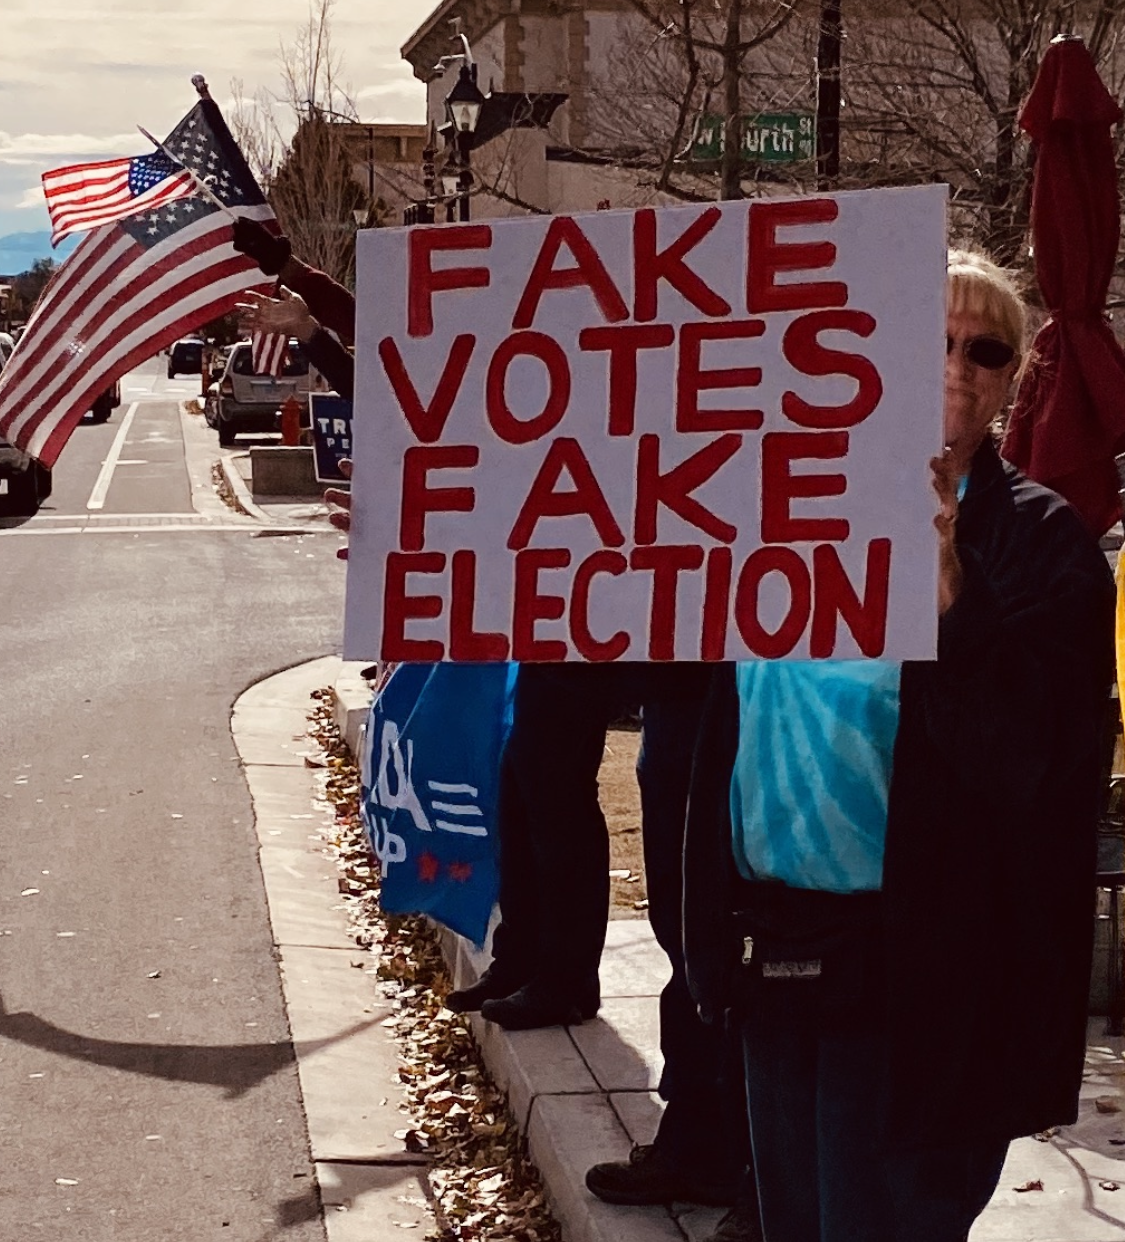 STOP THE STEAL, Carson City Nevada 11/14/2020 [APCT VIDEO]